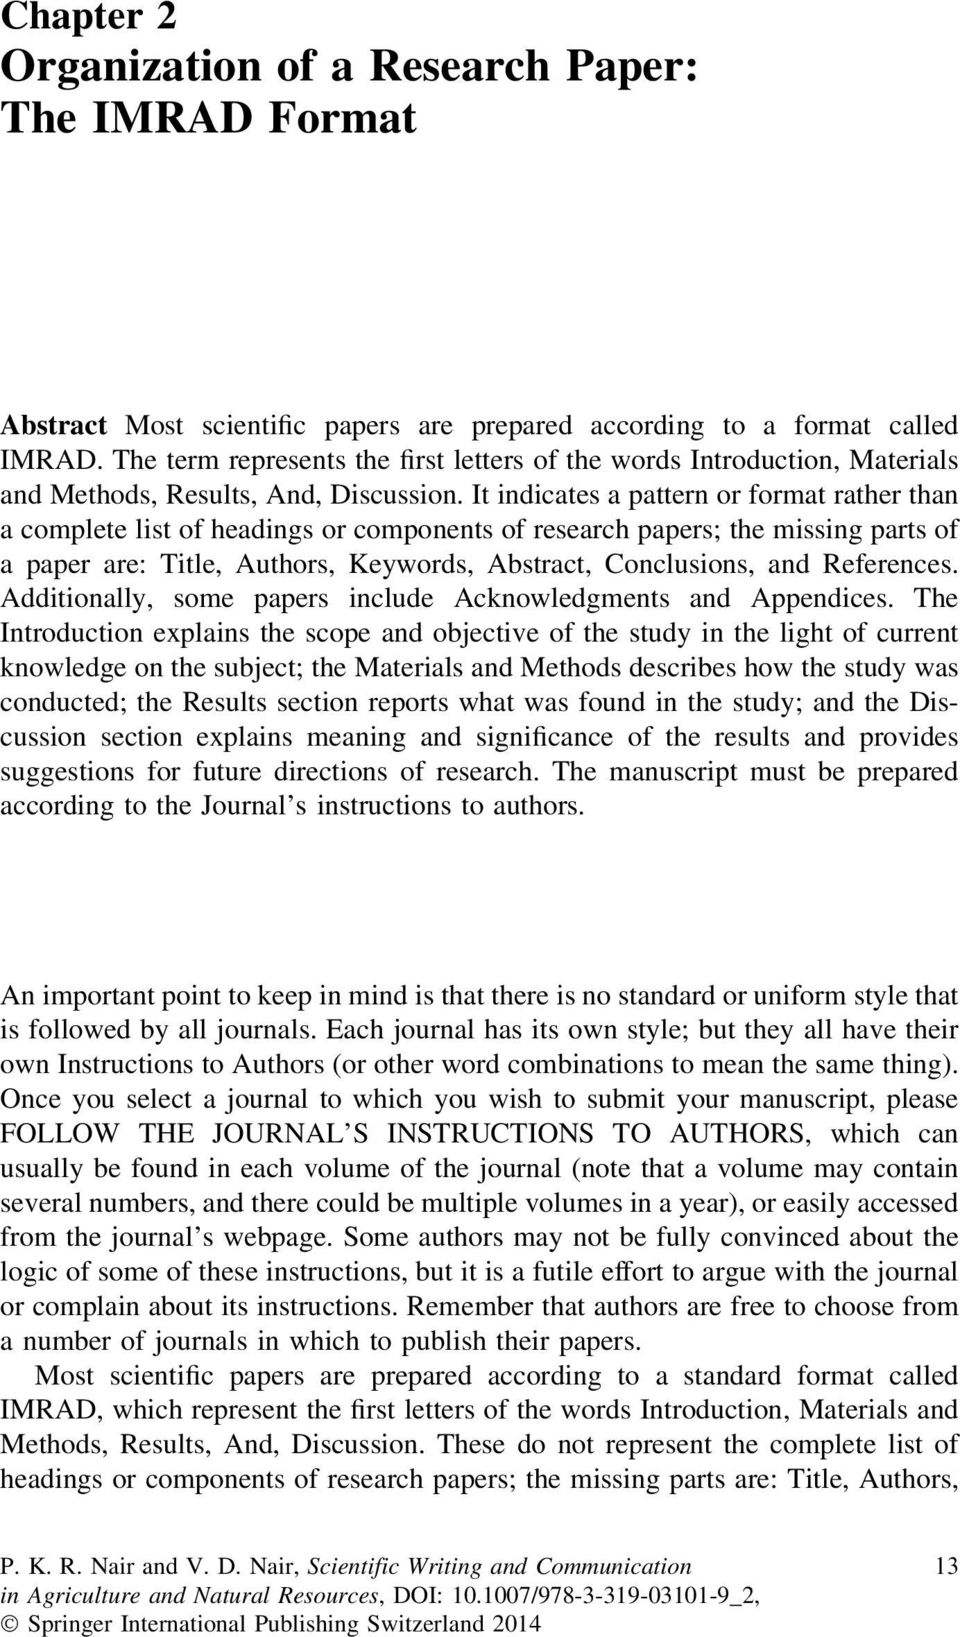 008 Research Paper Example Of Imrad Pdf Page 1 Stupendous Sample Full